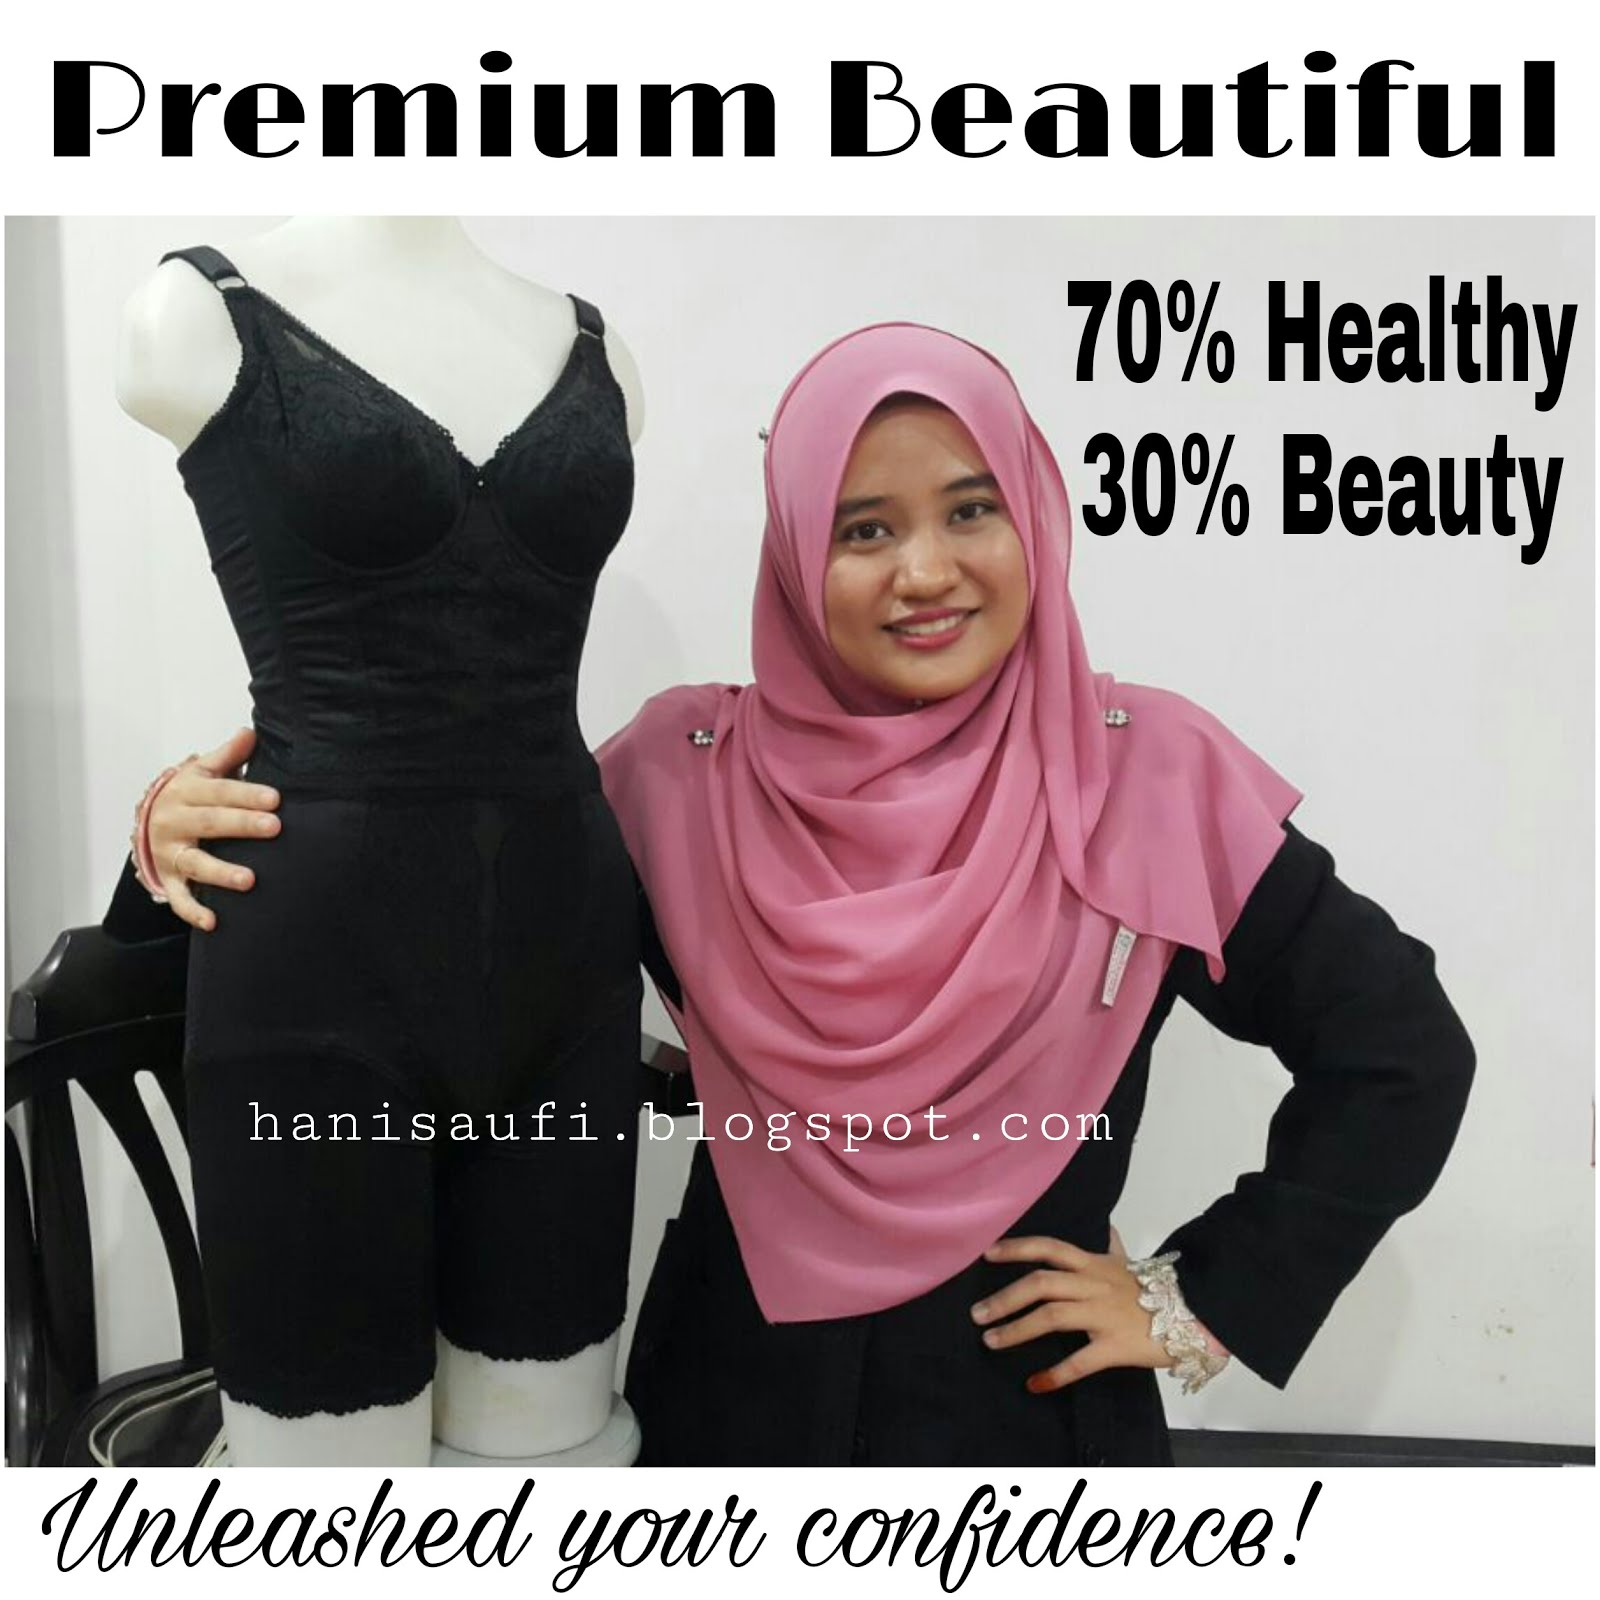 Premium Beautiful Expert Anda!